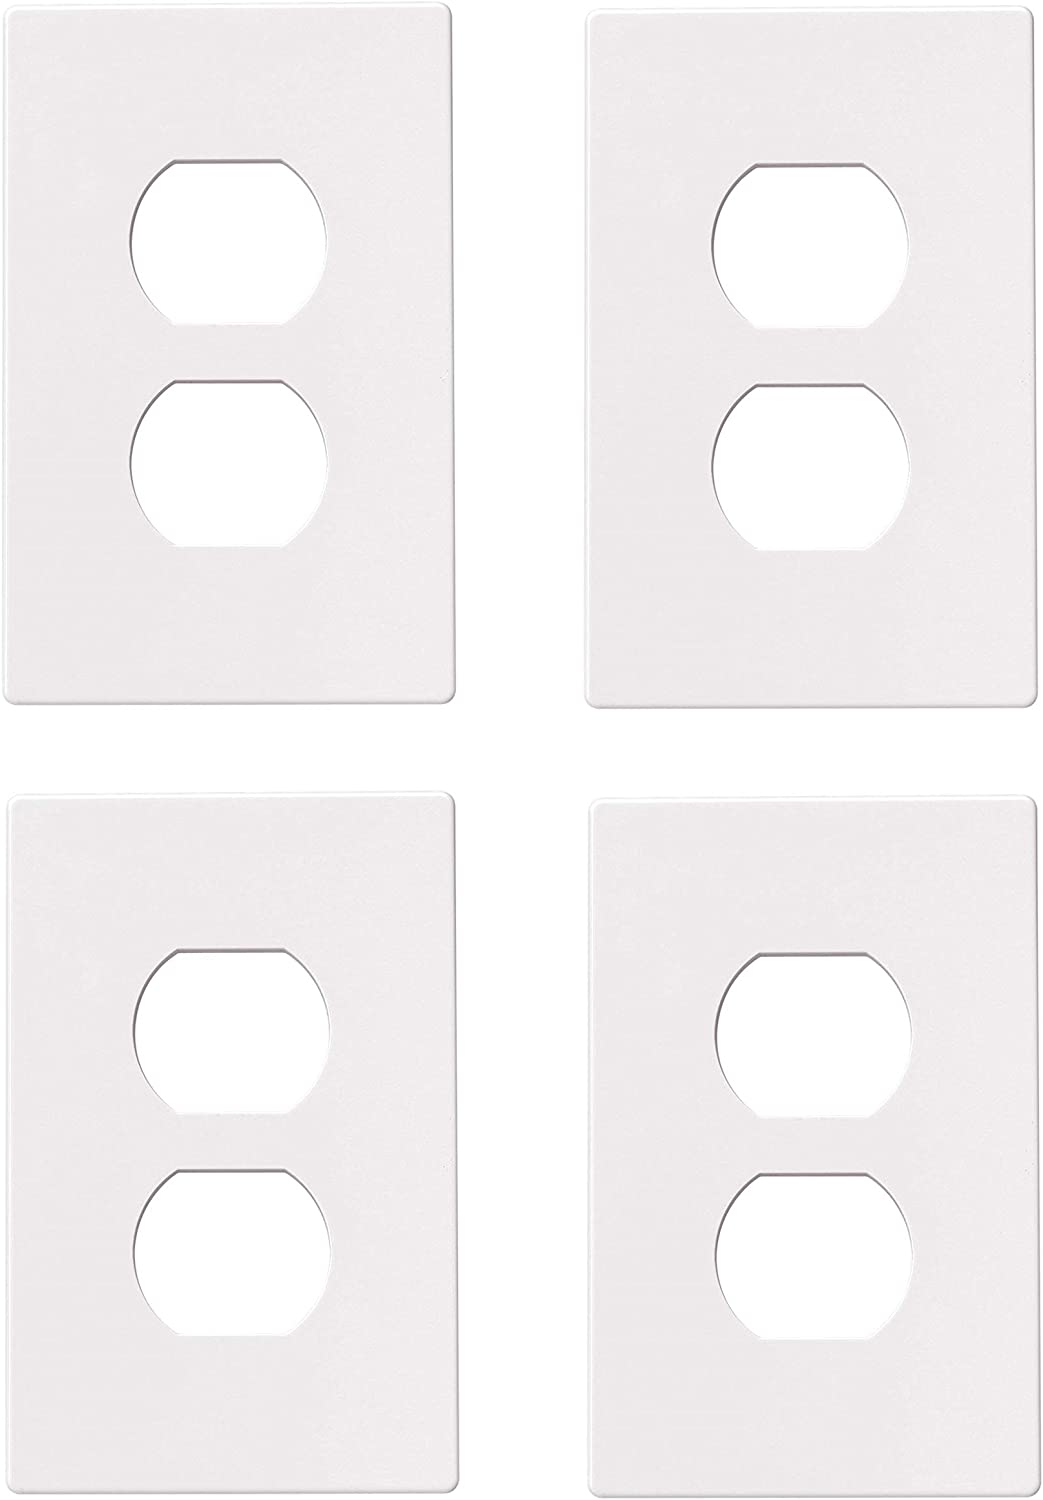 Eaton Pjs8w Polycarbonate 1 Gang Screwless Duplex Receptacle Mid Size Wall Plate White Sold As 4 Pack